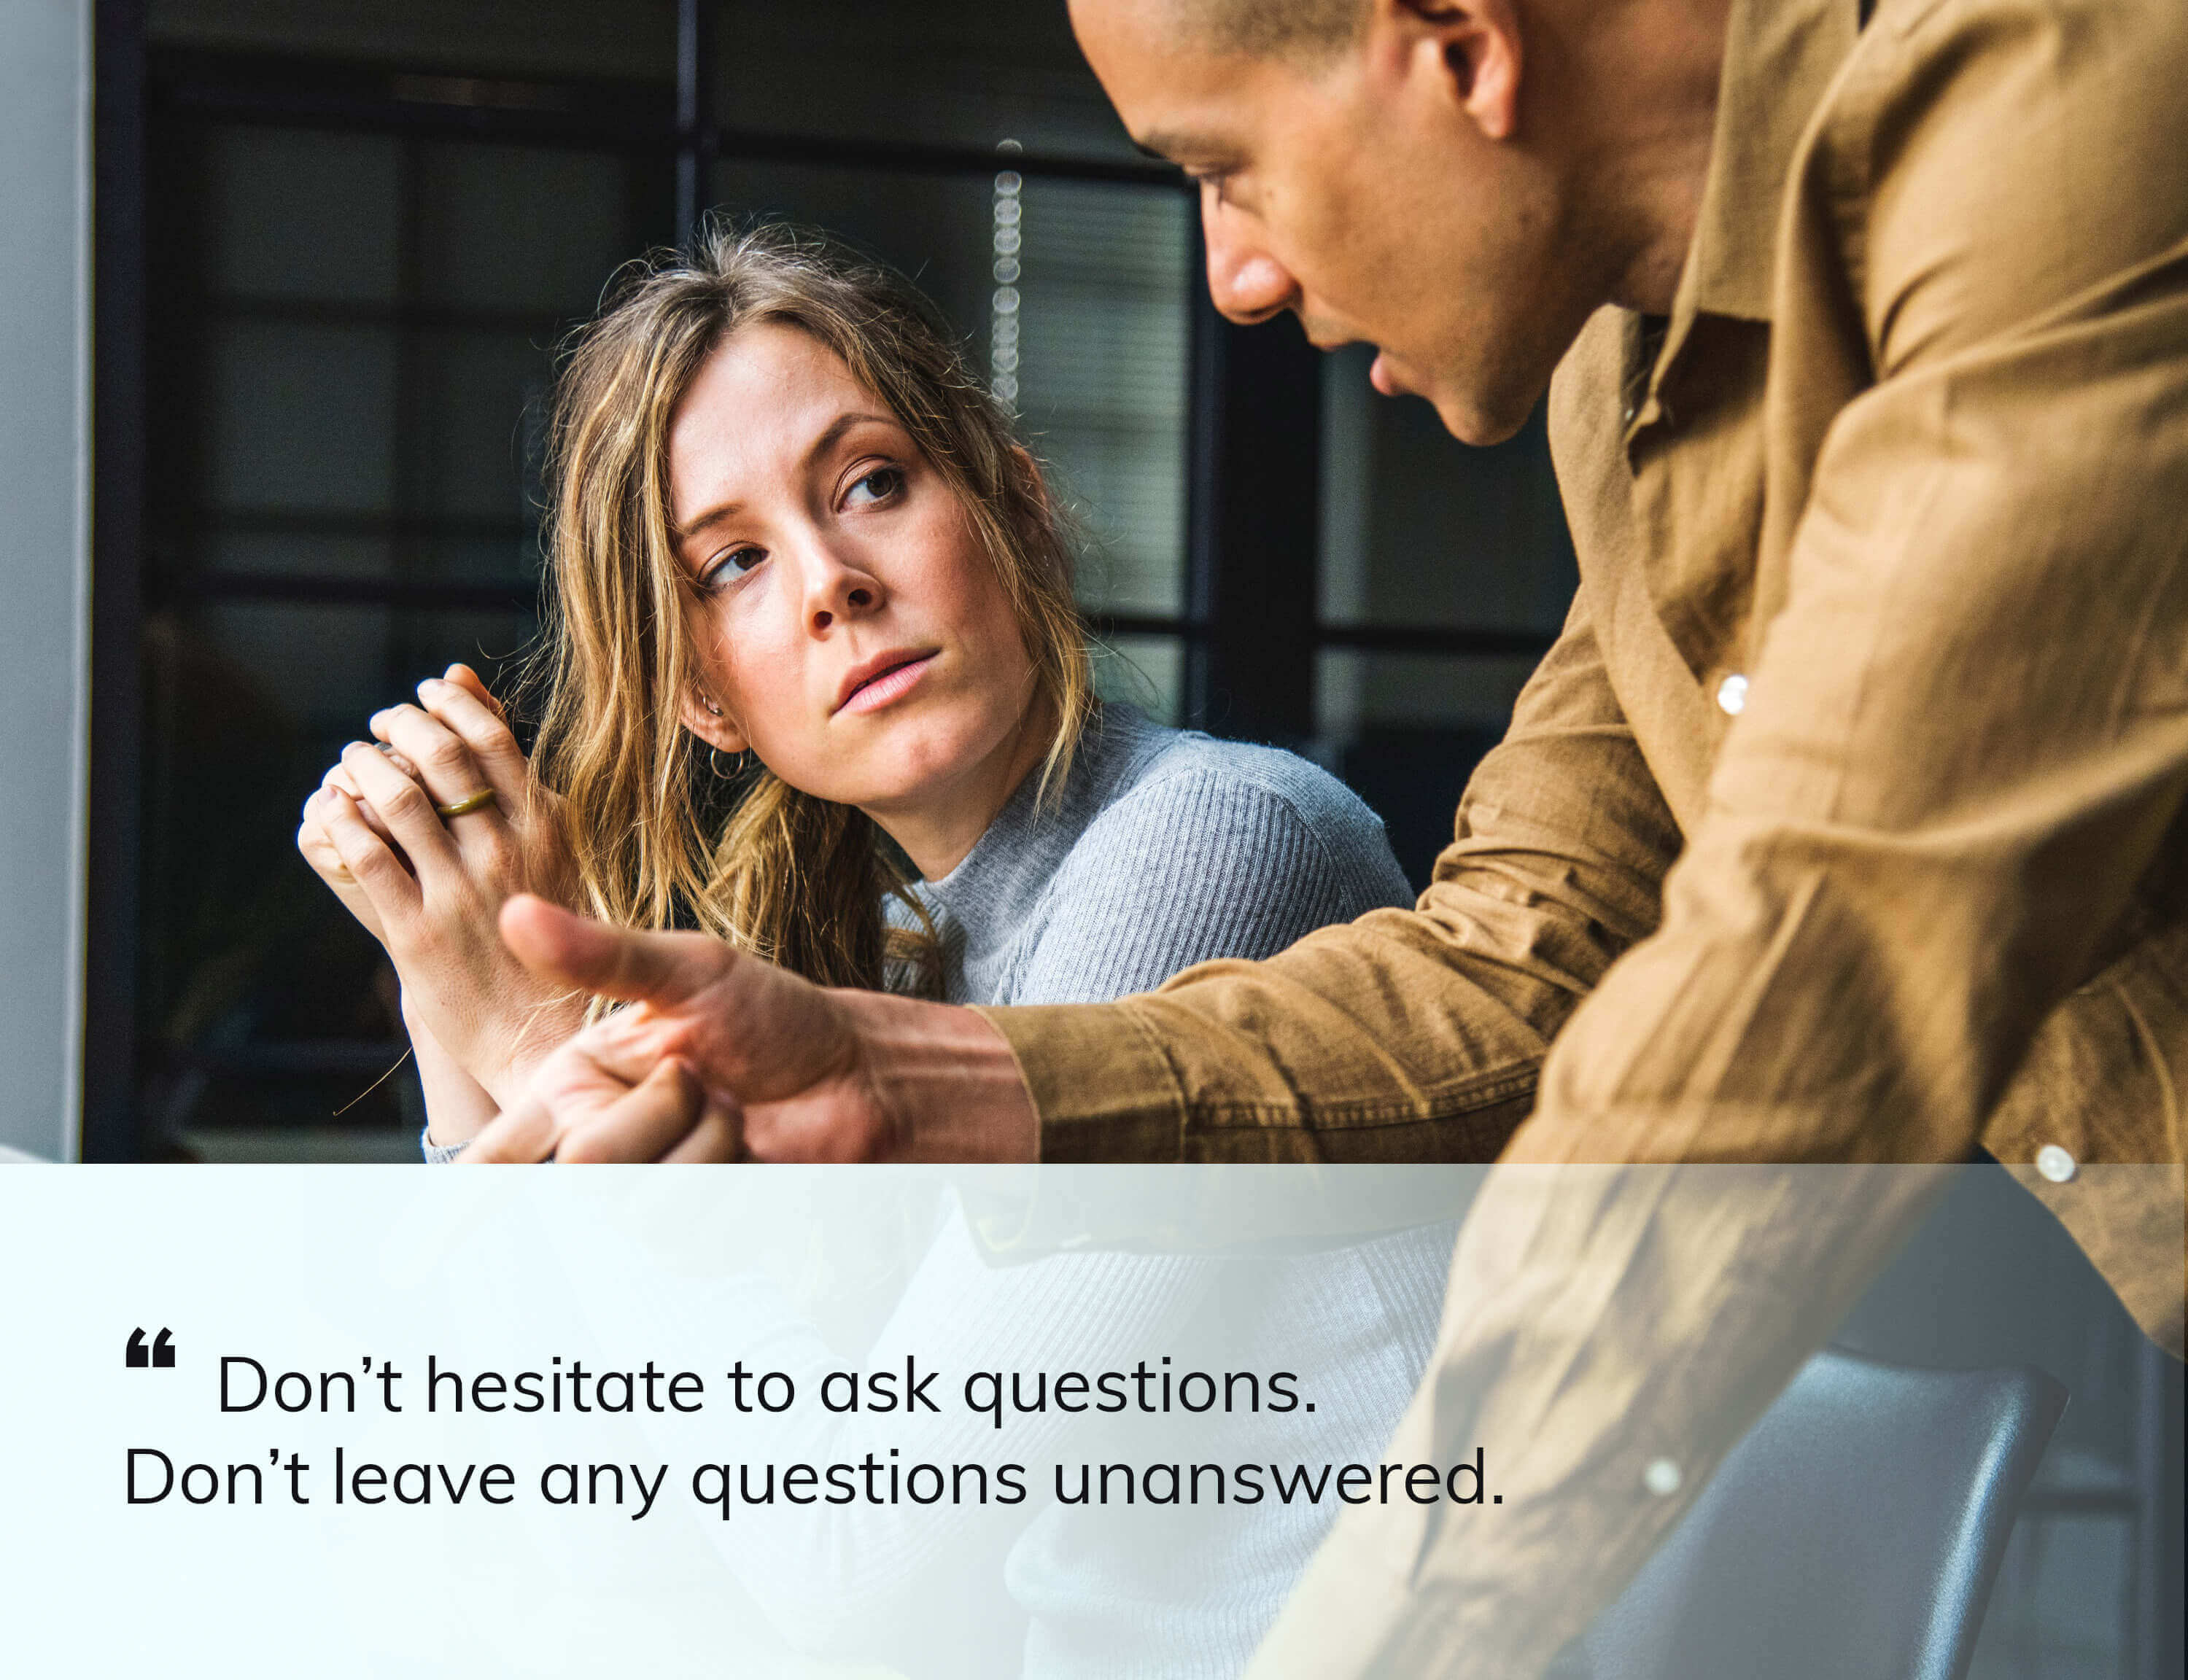 a man asking question to a women